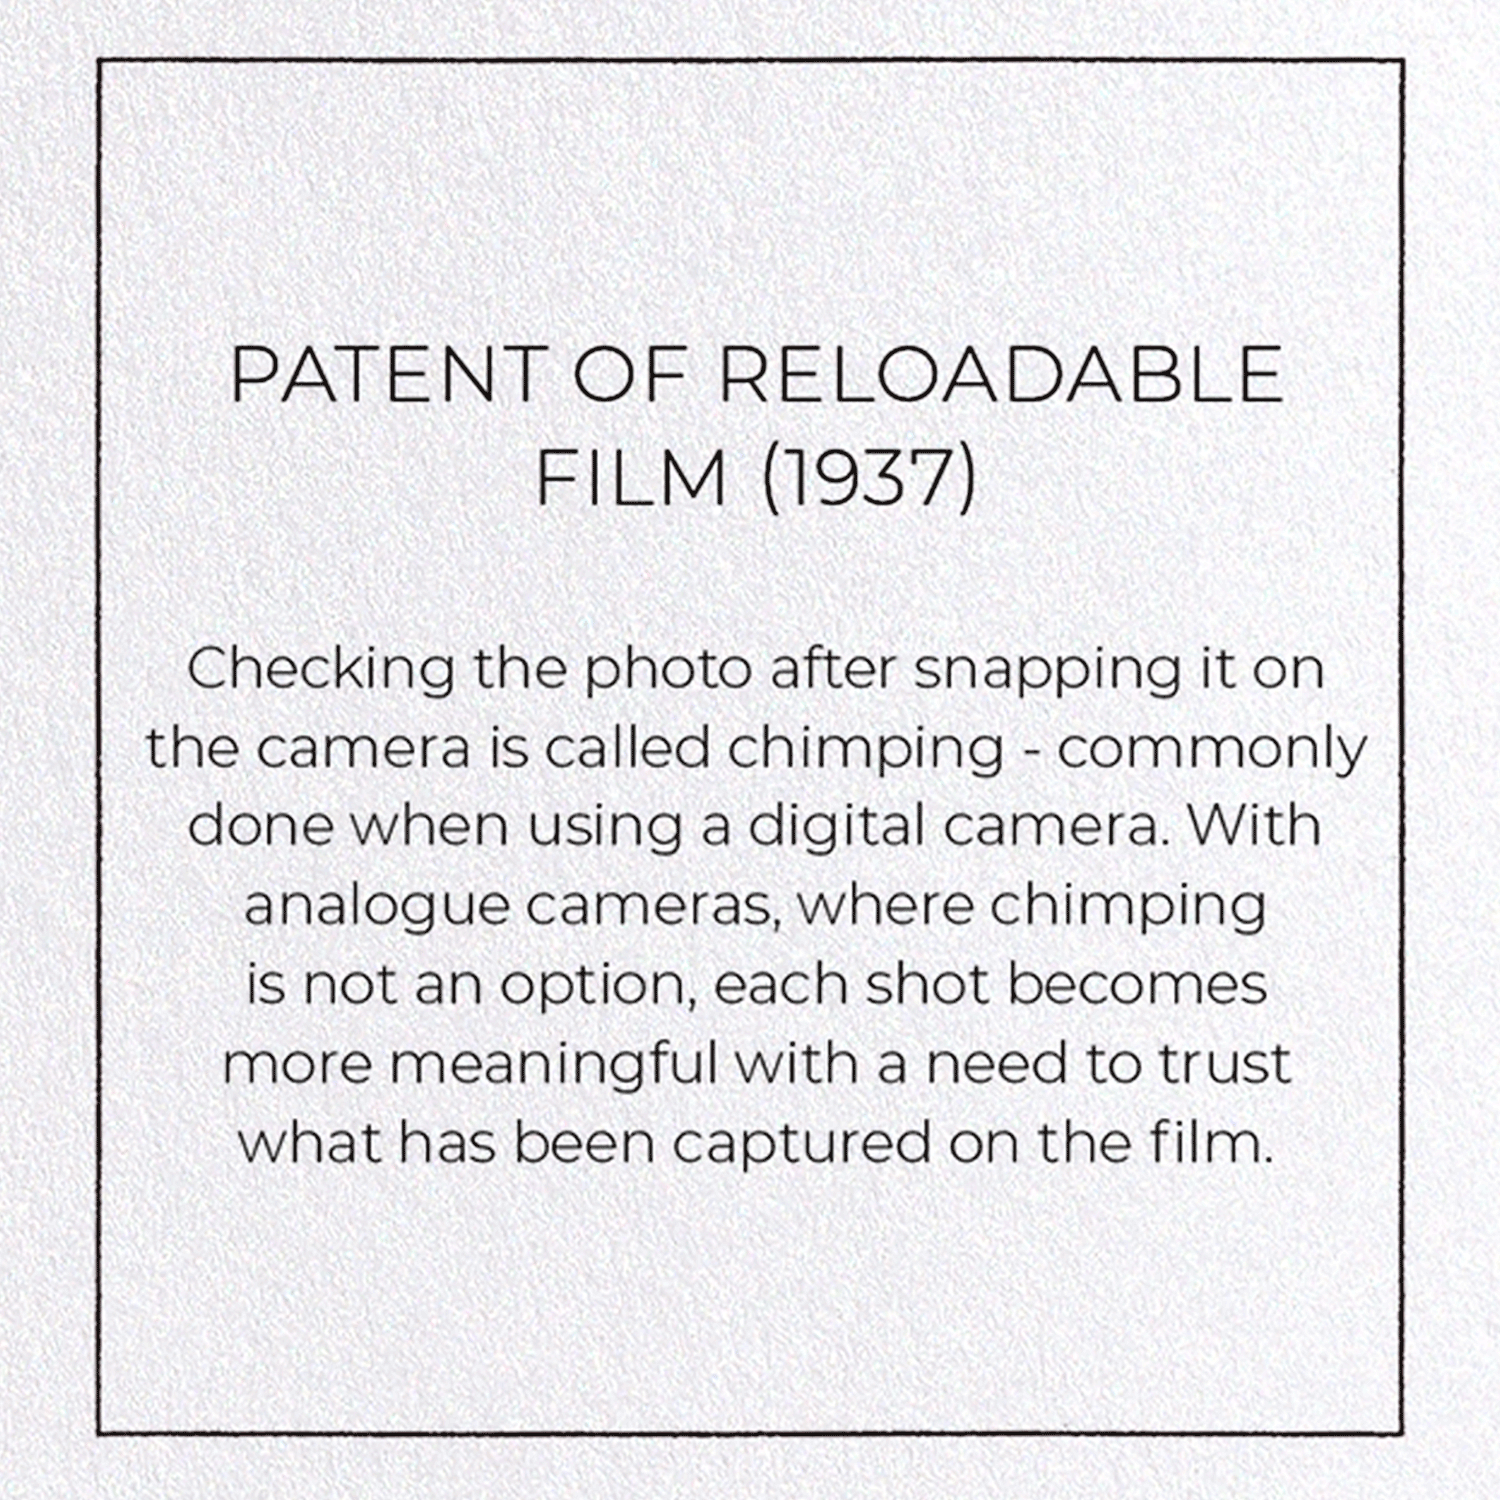 PATENT OF RELOADABLE FILM (1937)